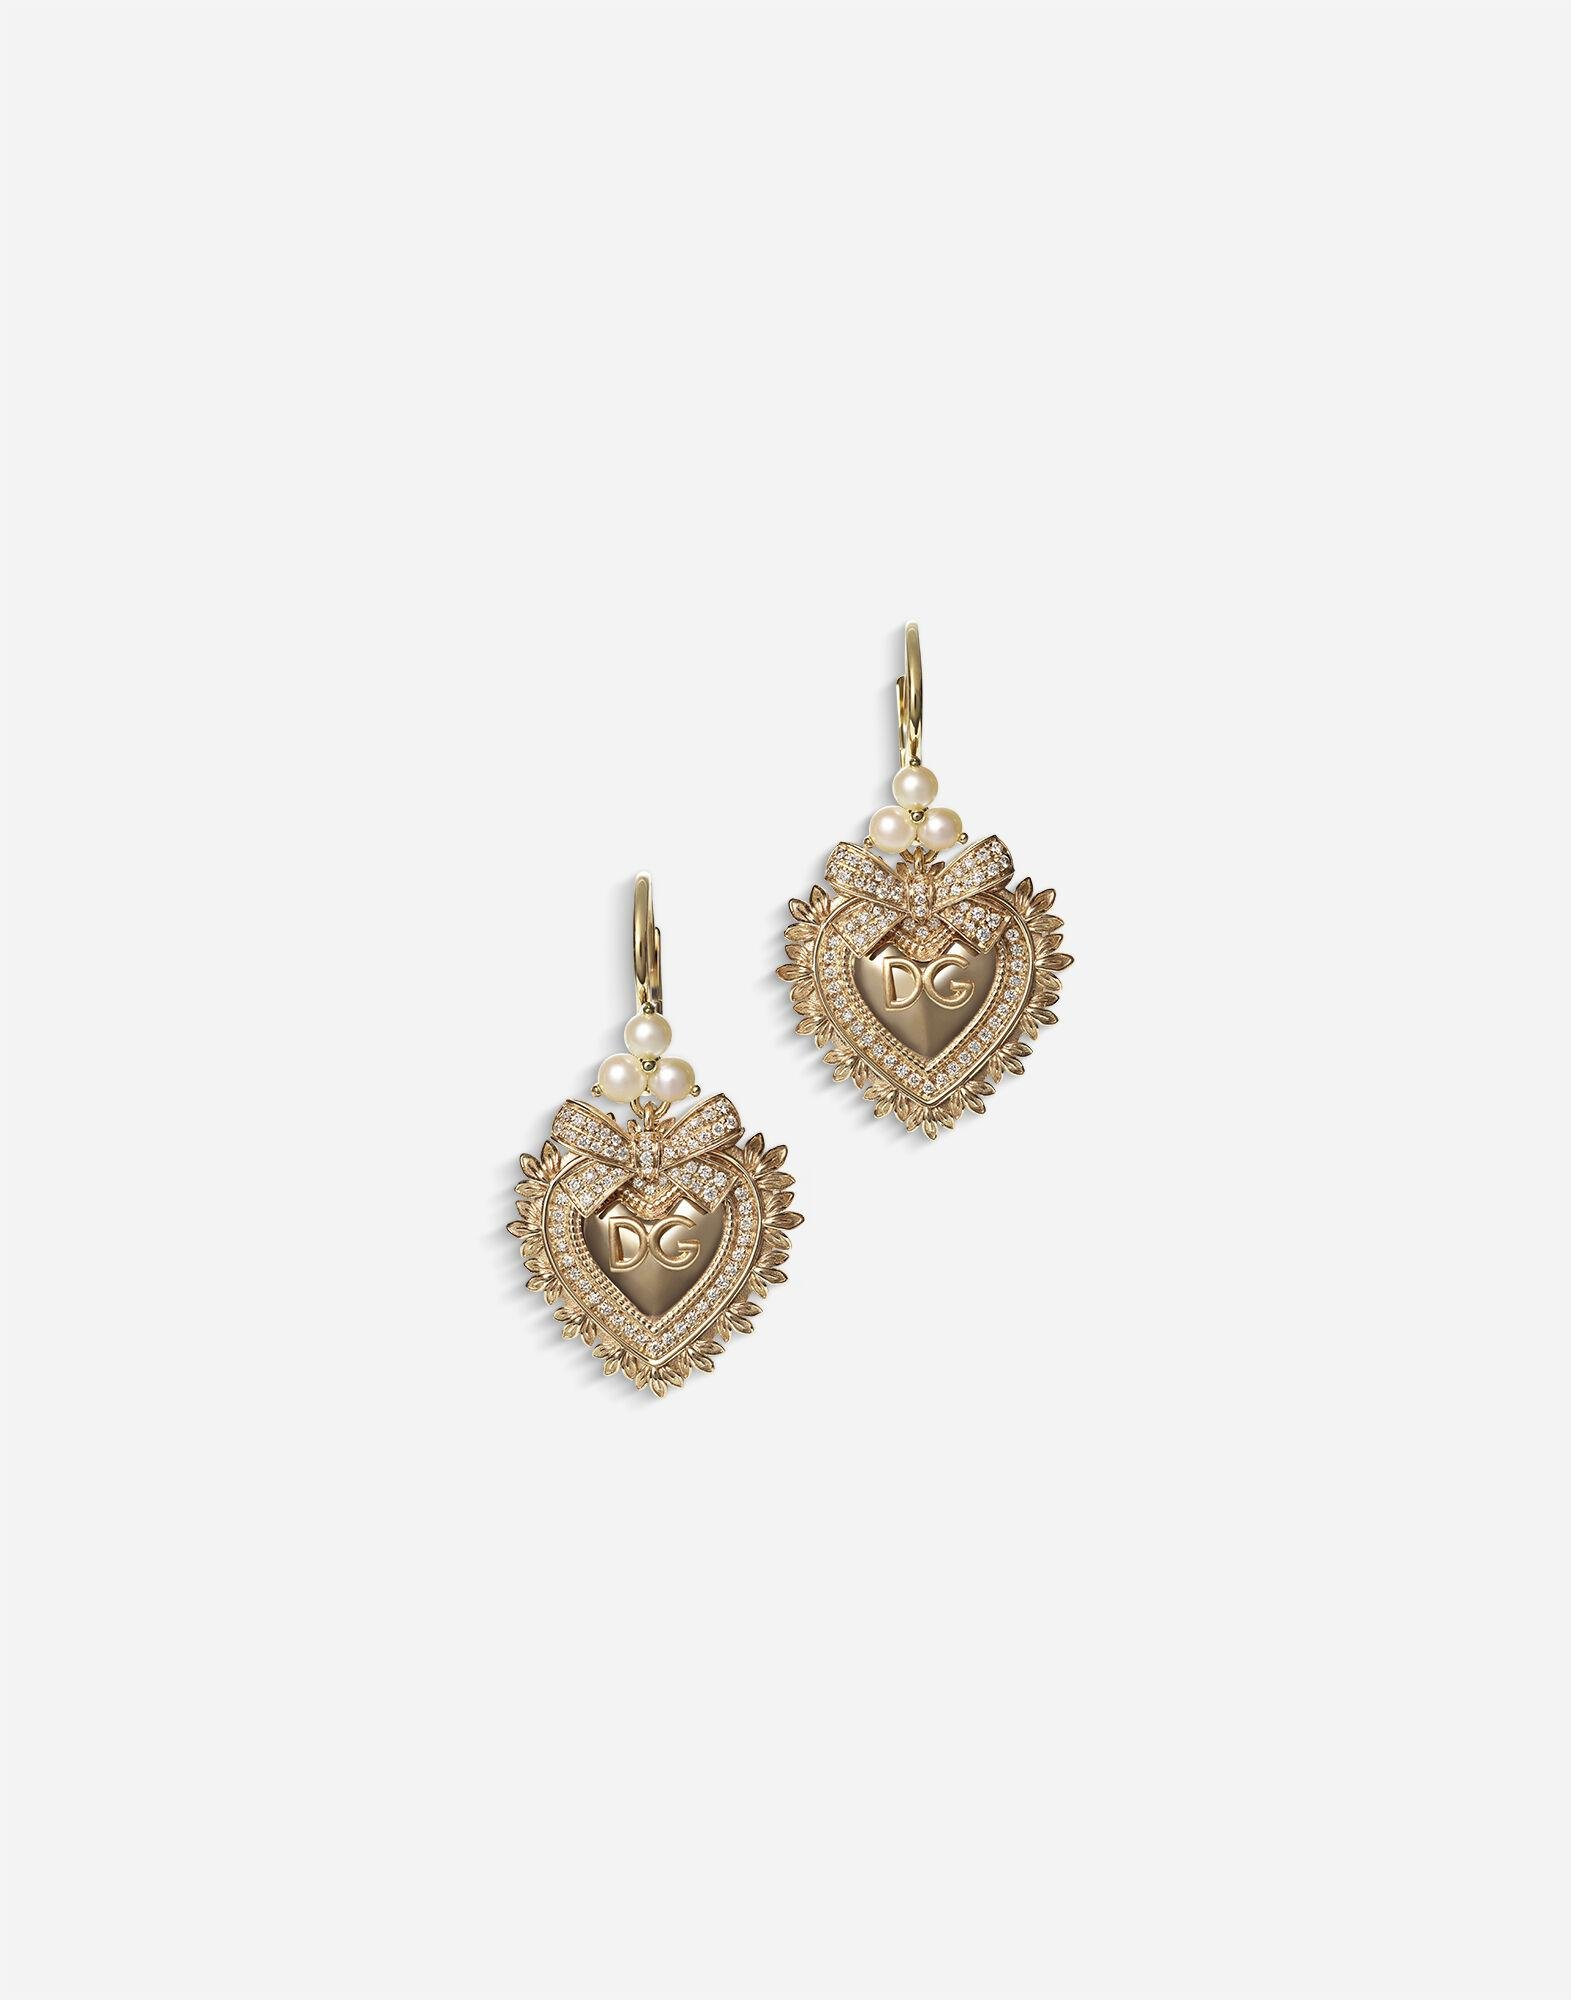 Devotion earrings in yellow gold with diamonds and pearls